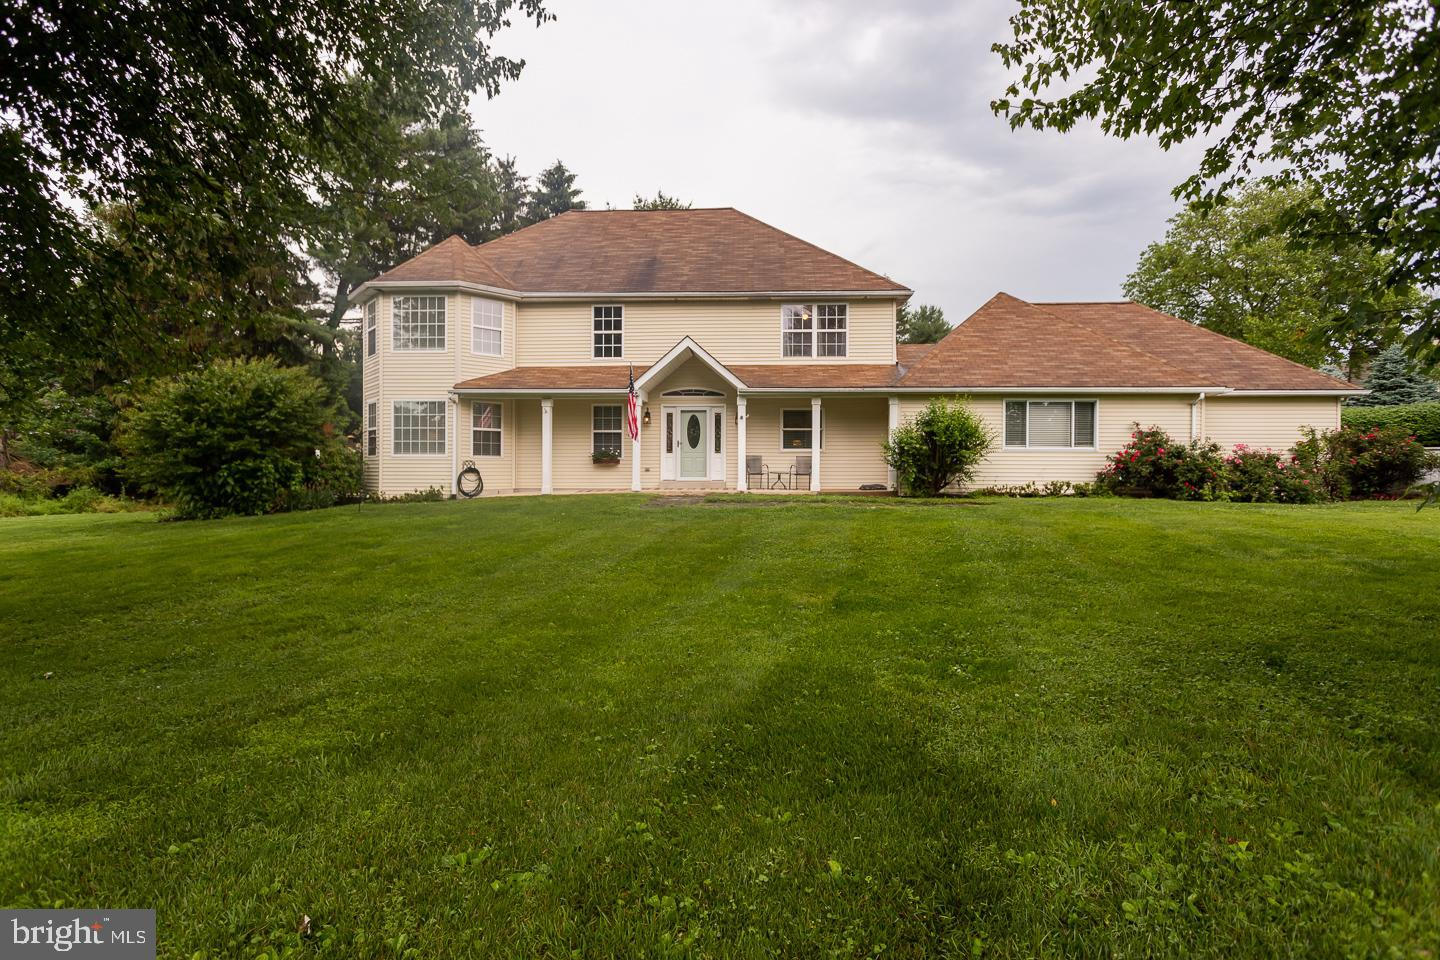 Don't miss the opportunity to own this unique colonial home in the desirable Westtown Township! This two story home is situated on over an acre and comes complete with beautiful landscaping, a 3 car garage, ample parking space, an open concept floor plan and extensive modern features. As you enter the home you are met with gleaming hand-scraped hickory floors that expand throughout the entire open foyer, the massive sunken living room with bay window & eat -in dining room.  Just inside the entryway you have the private first floor office space with double french doors, built in shelving & a large closet.  Stepping into your kitchen you have all stainless steel appliances, gas cooking & a massive center island with ample seating and brick accents & rustic lighting above. The brick fireplace with barn beam mantel is the focal point of the kitchen. The built in refrigerator & freezer allow for additional space for your entertaining needs along with the built in bar shelving and walk in pantry. Just off the kitchen is your mudroom & half bath for you & your guests convenience.  Moving up the open staircase to the second floor the hand-scraped hickory floors continue.  On this level you will find the large master suite with a bay window & double french doors onto your private deck. The additional set of french doors lead you into your master bathroom oasis with a large doorless walk in tile shower, raised tub, walk in closet & crown molding with lighting. Rounding out this level you will find 3 additional generously sized bedrooms all with ceiling fans, a hall bathroom centrally located and the laundry room.  The unique hall bathroom features 3 floating sinks & a subway tile shower. The third floor bonus loft is ready for your imagination to soar and to be turned into a space of your own with its own rooftop deck overlooking the yard and a fireplace.   As if the main portion of the home didn't wow you enough the finished basement offers a bedroom, kitchenette, living roo